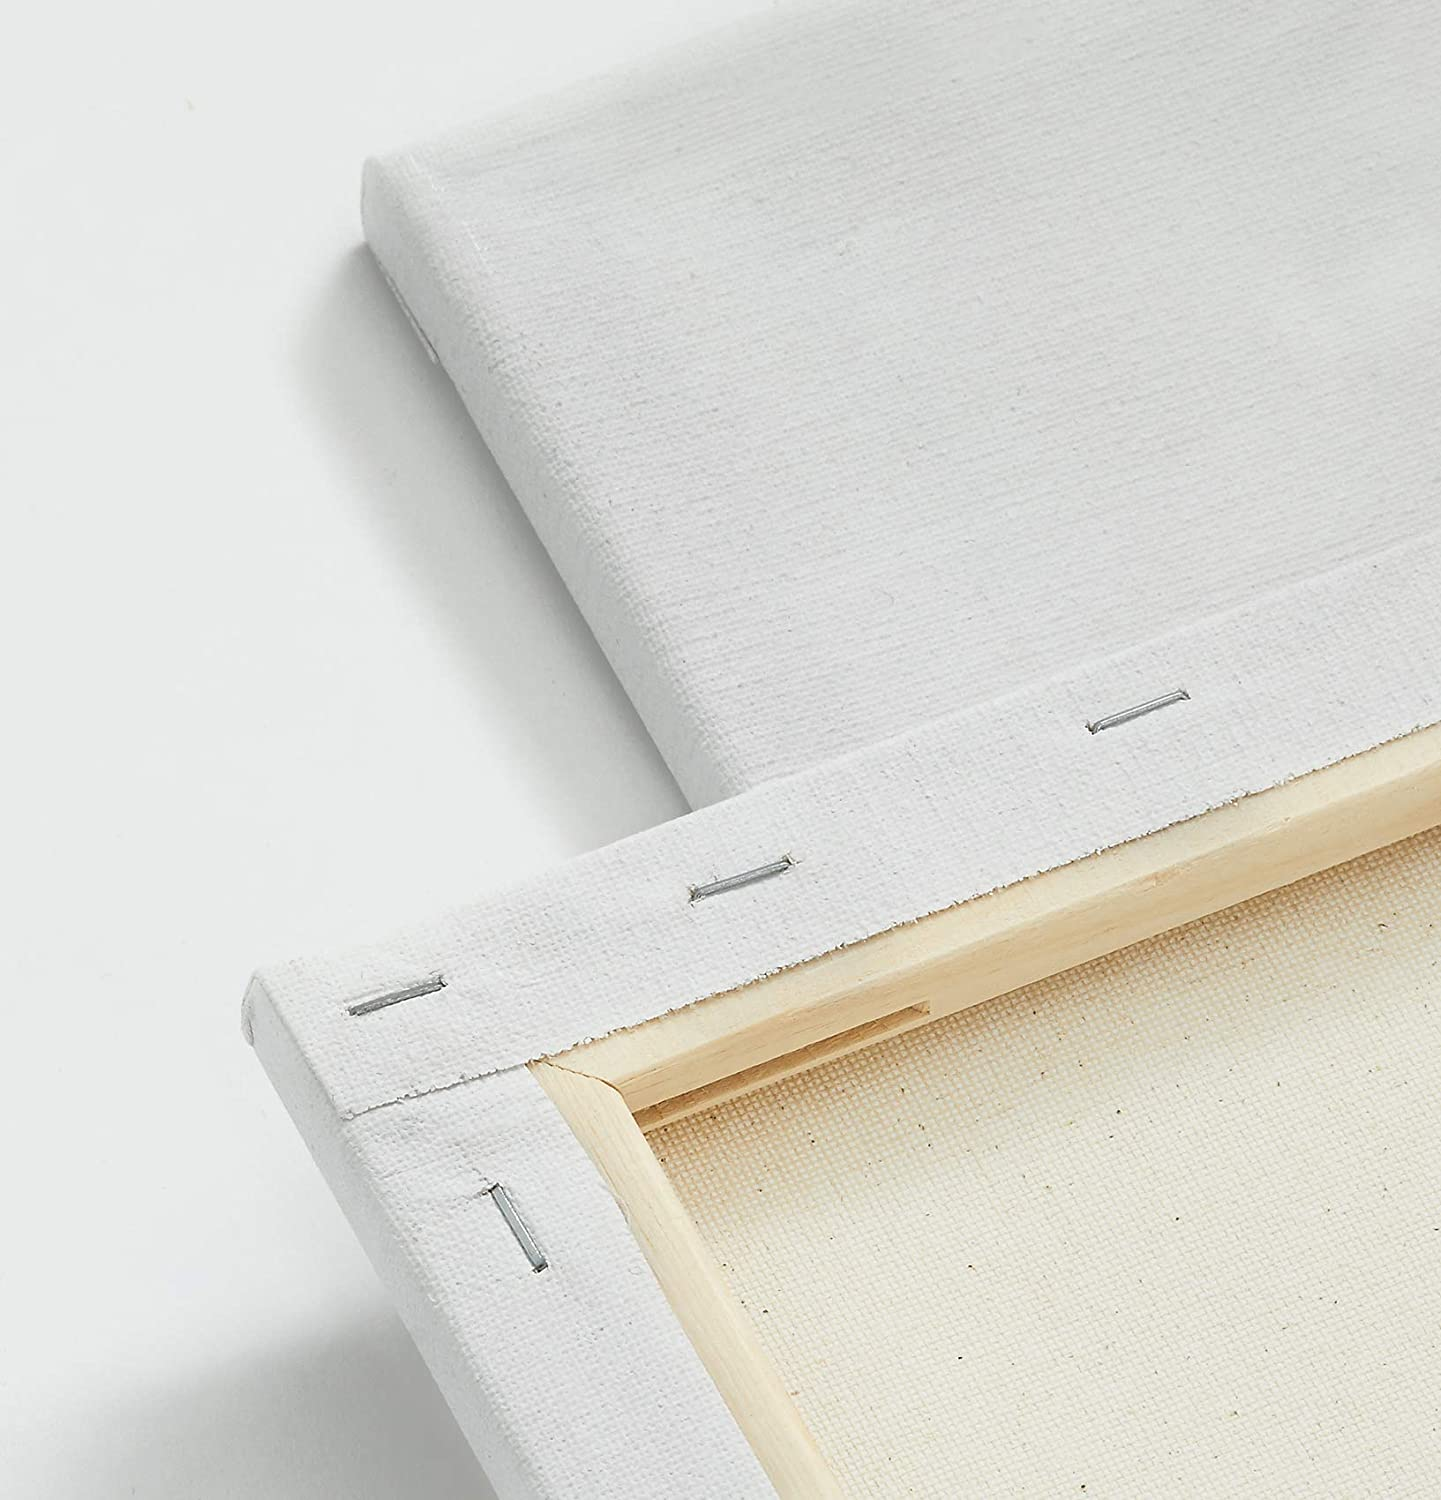 miniature 17 - Americanflat Stretched Canvas in White 100% Cotton Wooden Frames & Acid Free